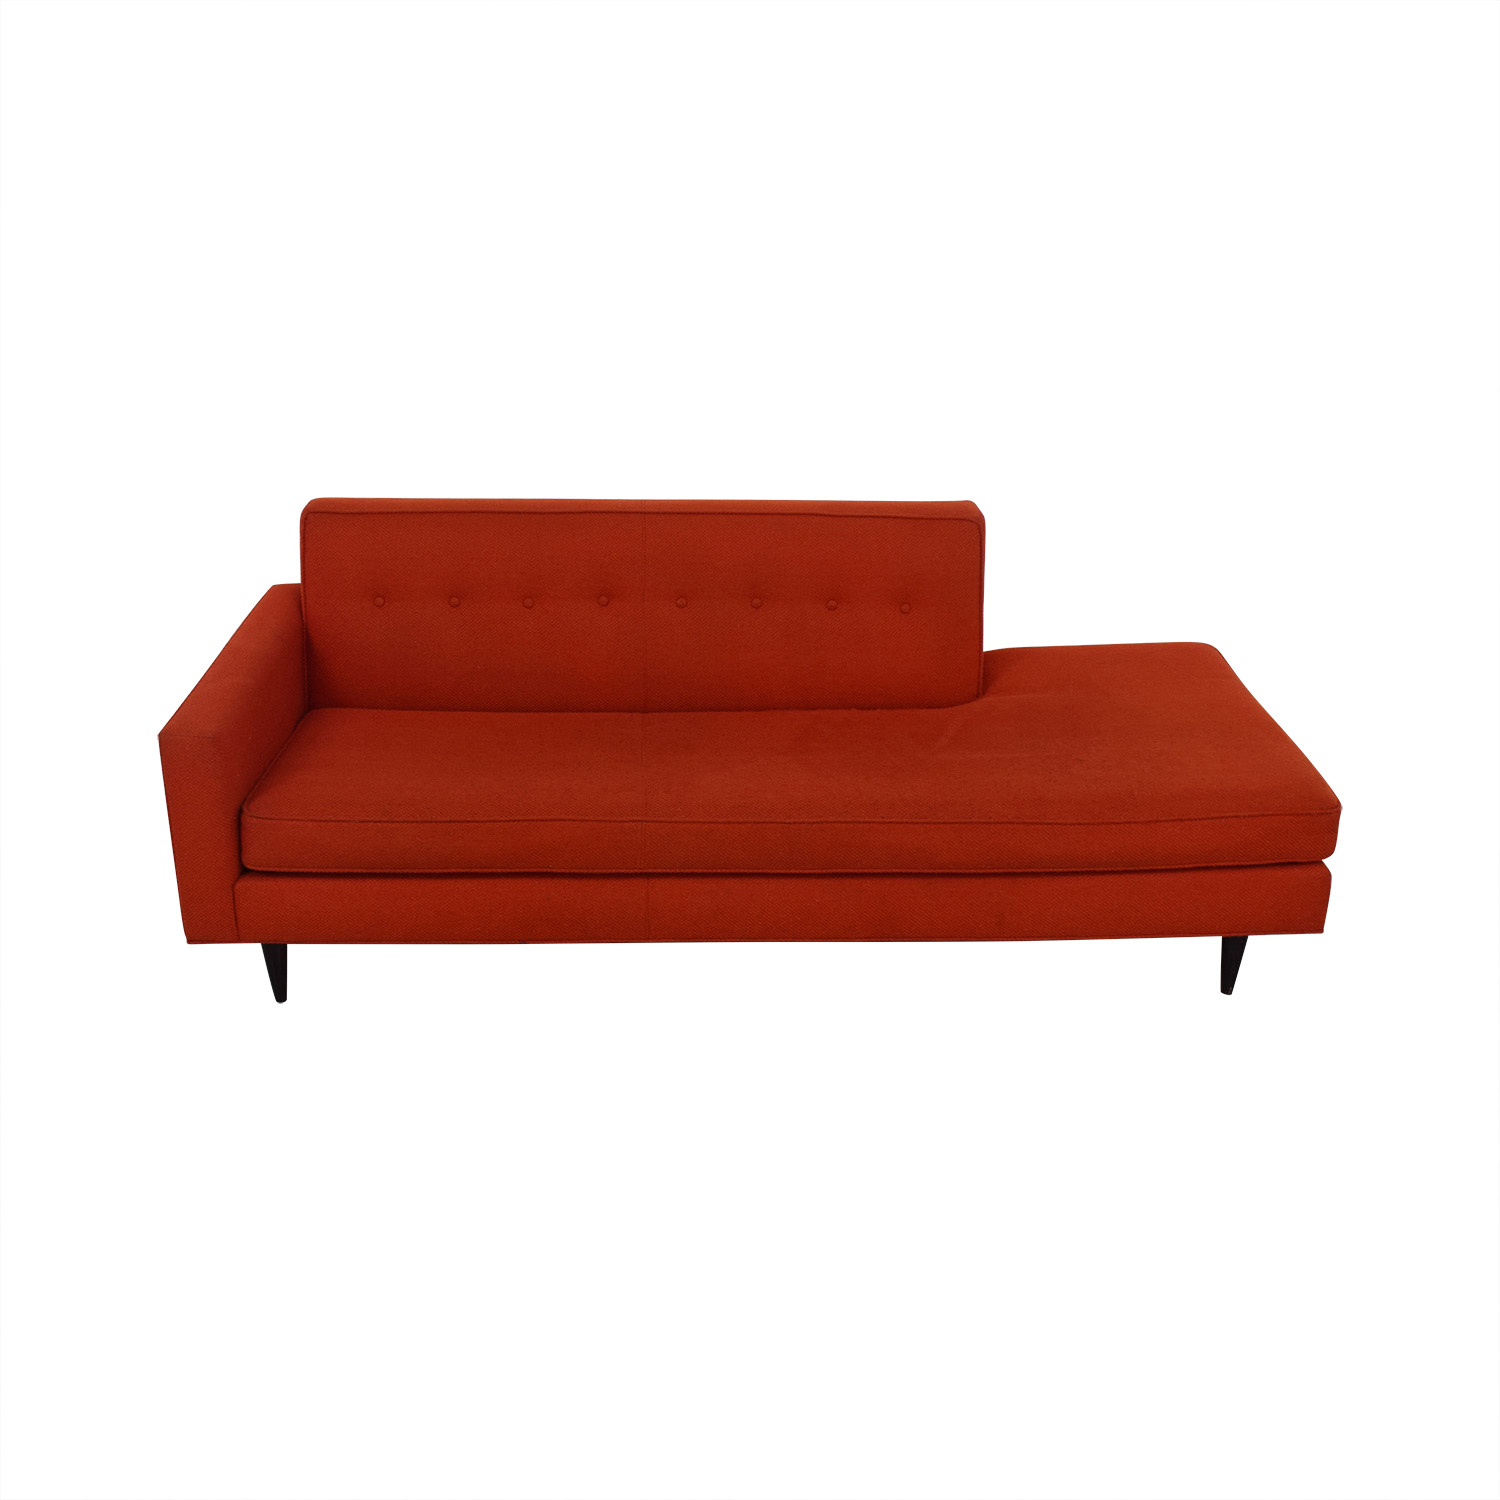 Design Within Reach Design Within Reach Bantam Studio Sofa dimensions